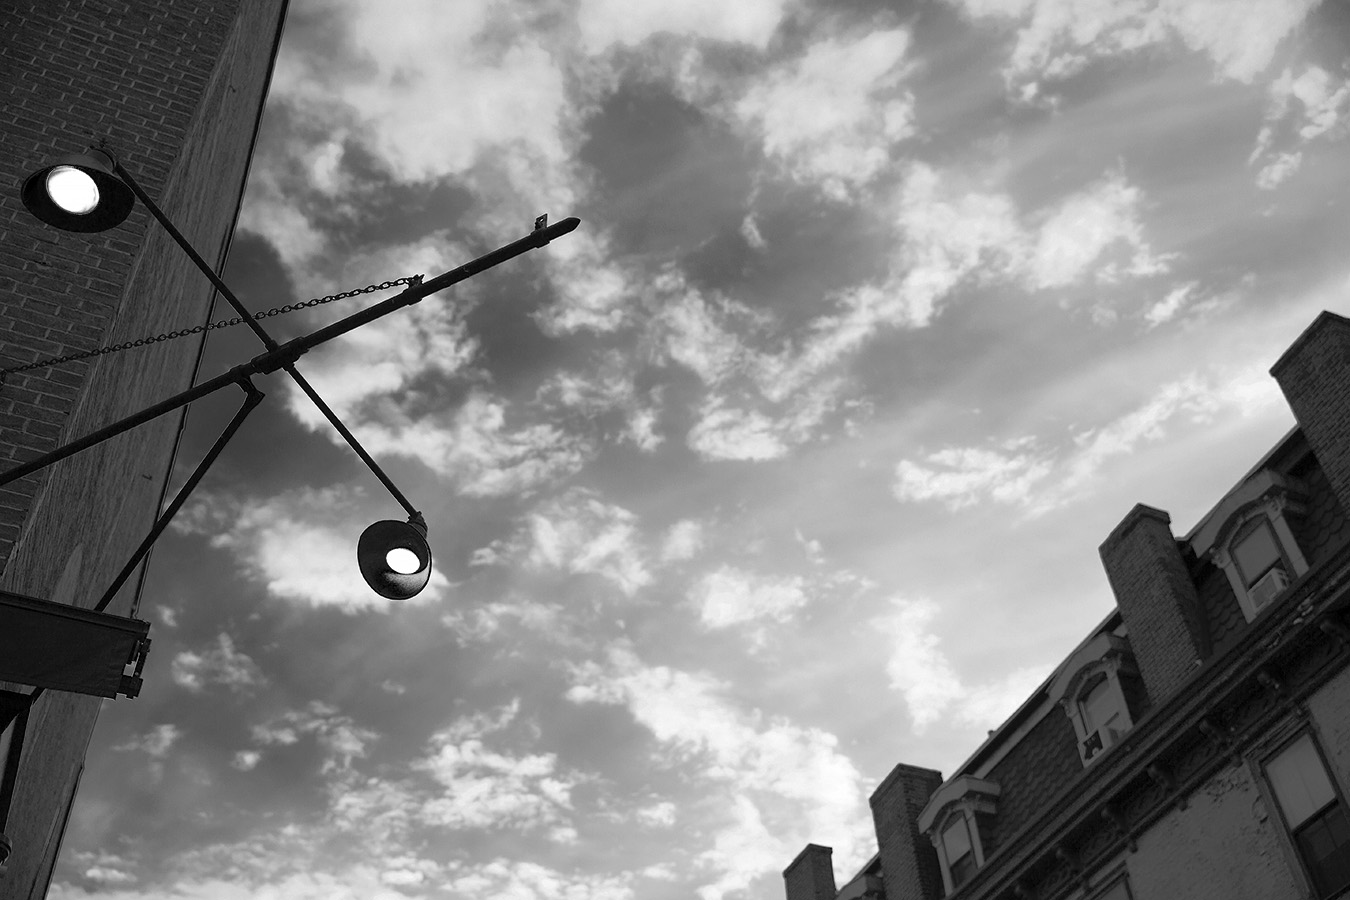 12_Light Sky_Casey Egner_Street Photography_Ornament_Black and White_Light fixture_facade copy